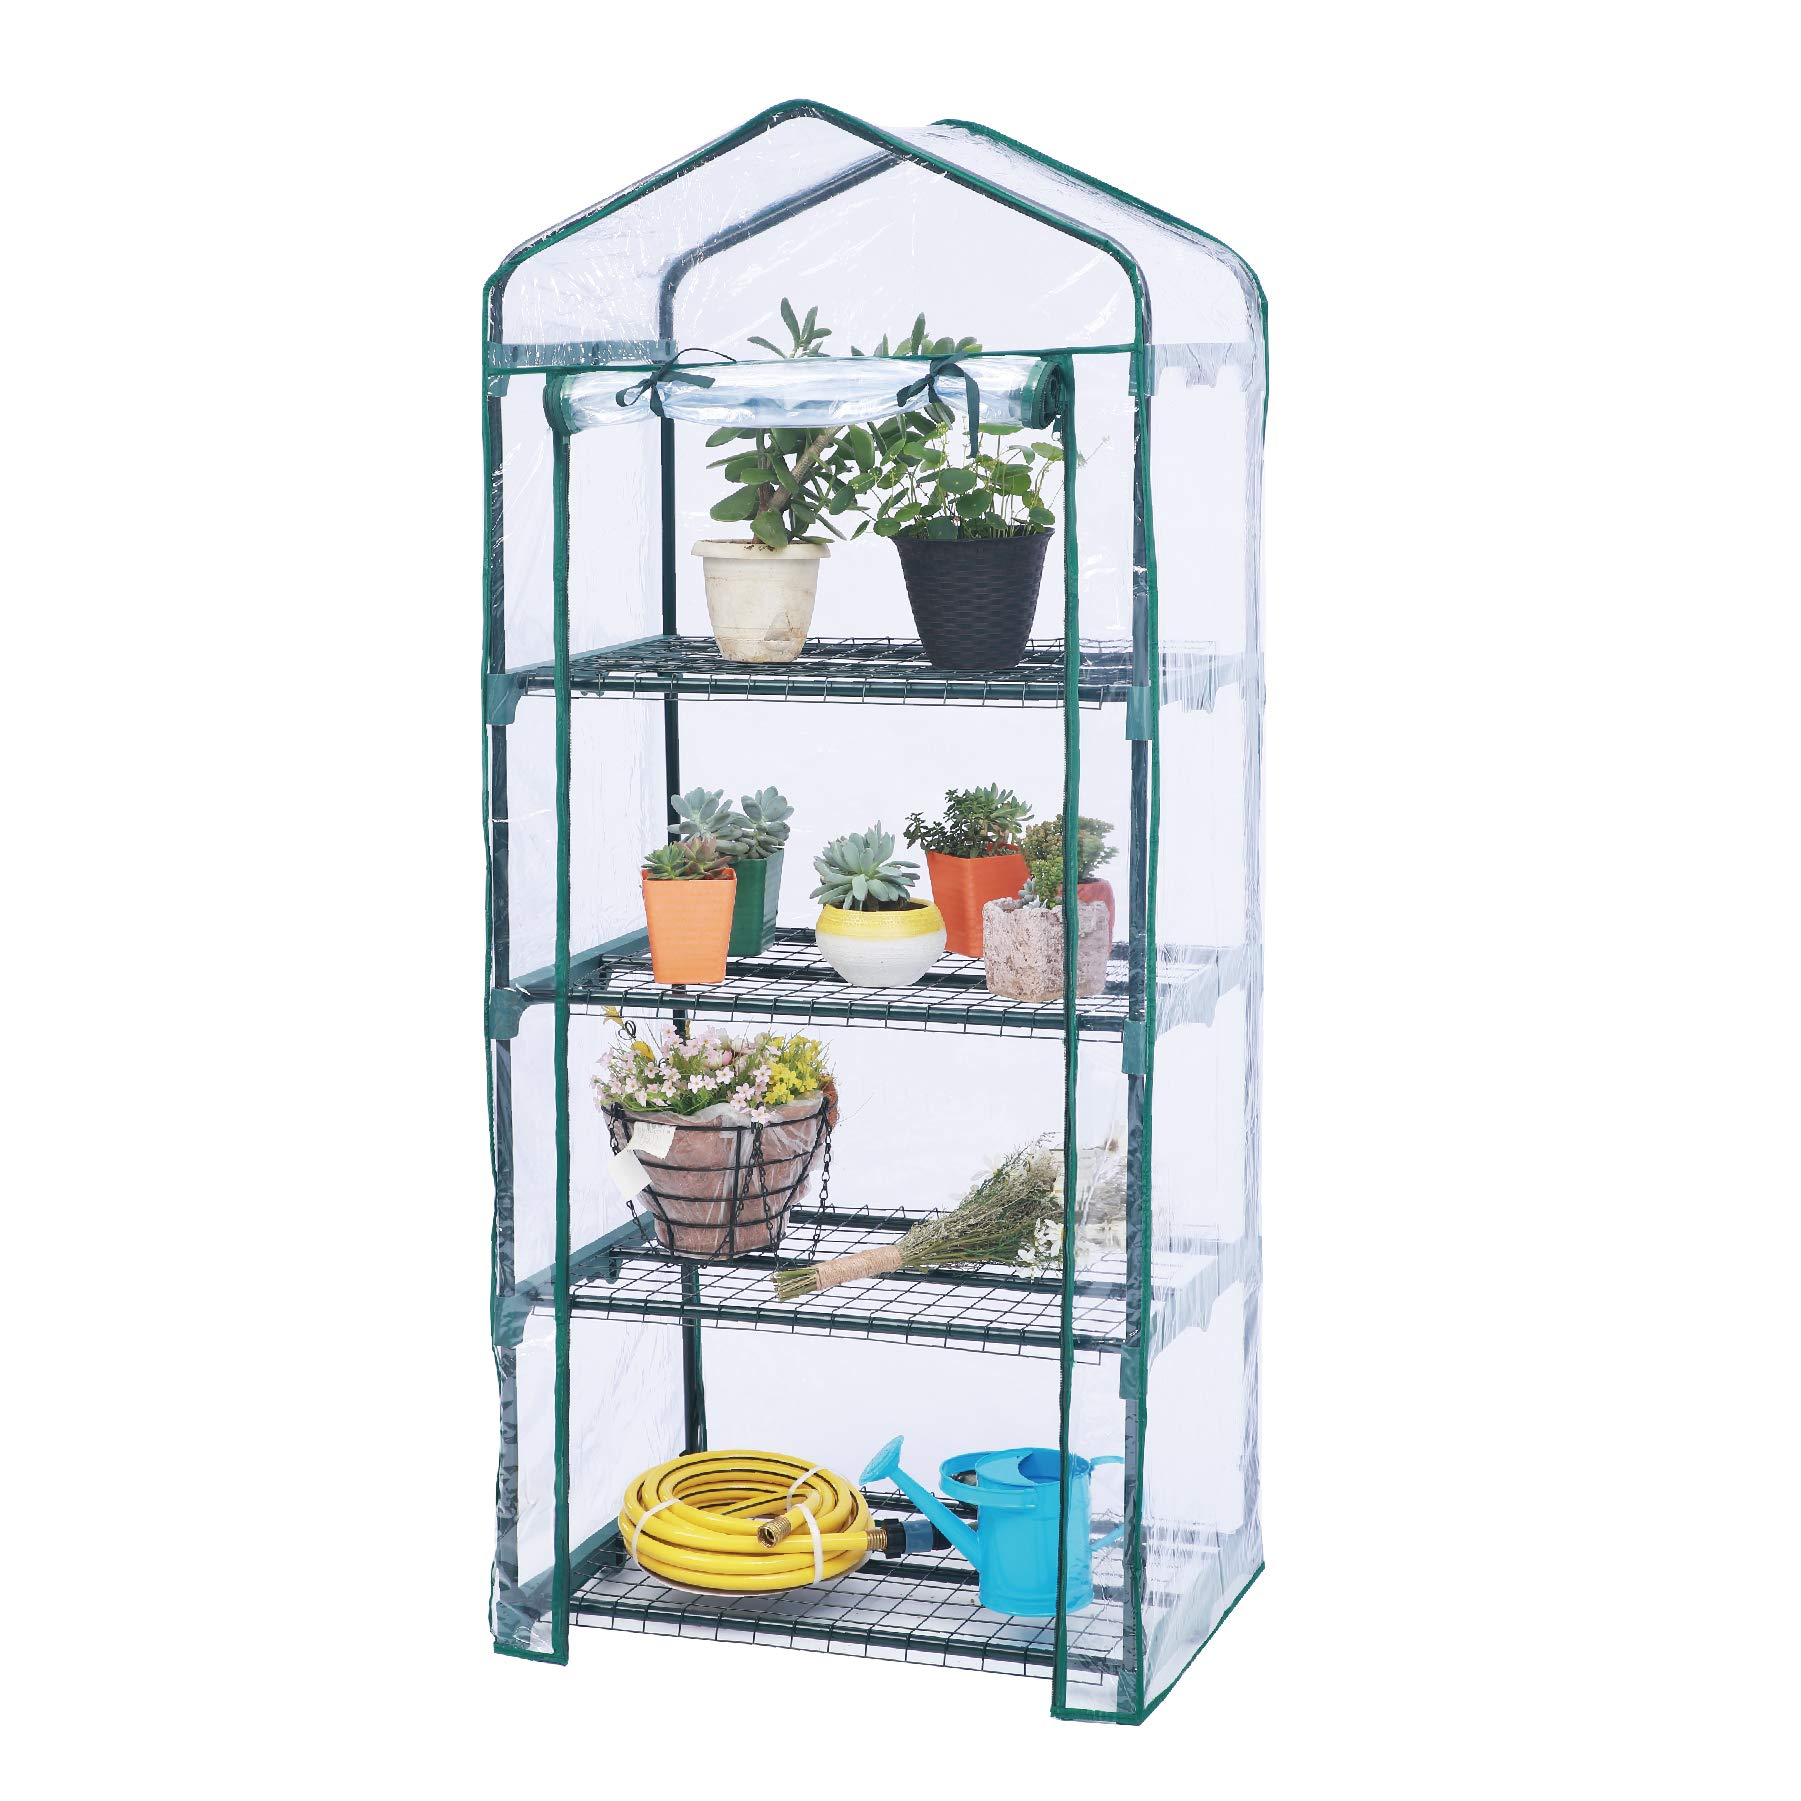 Worth Mini Greenhouse - New Metal Green Version with 4 Tier Collapsible Shelves - Best Greenhouse with ROLL UP Zipper Door Seedlings & Seed Propagation Plant Growing